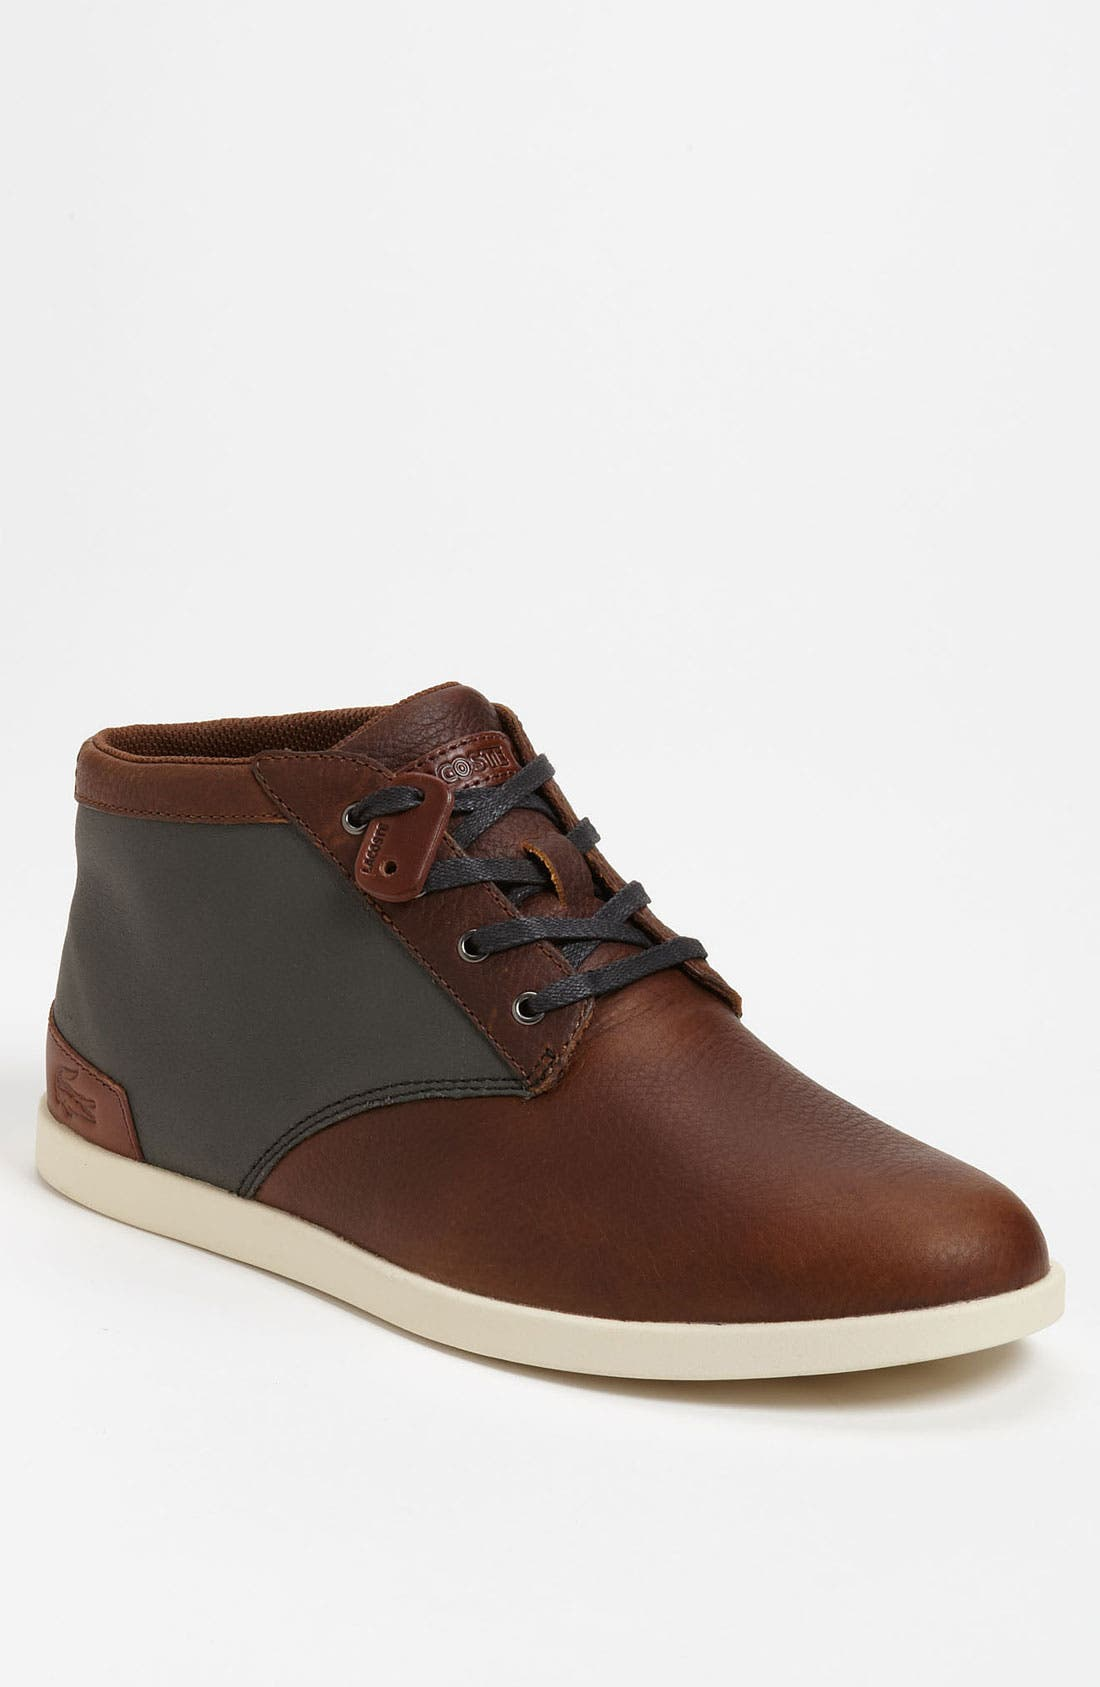 Alternate Image 1 Selected - Lacoste 'Fairbrooke 11' Chukka Boot